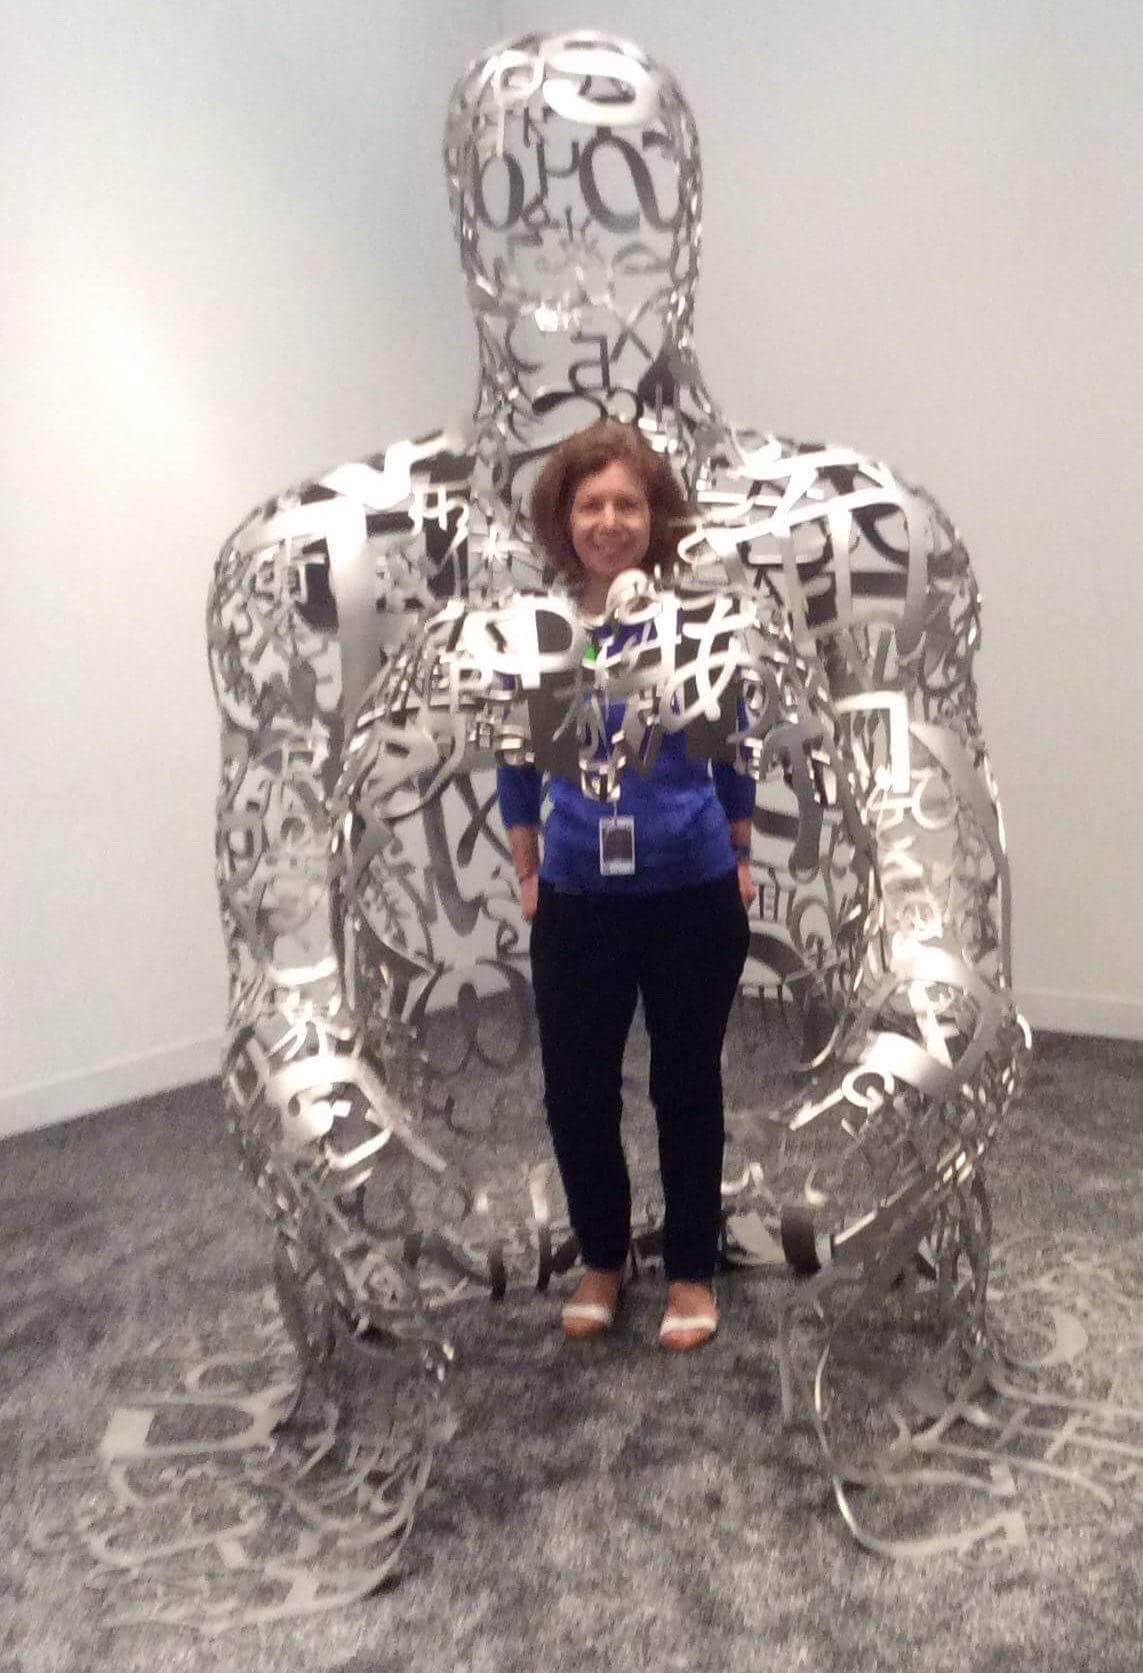 Nancy Nesvet with Jaume Plensa's sculpture in the Collectors Lounge at Art Basel Miami Beach 2017.